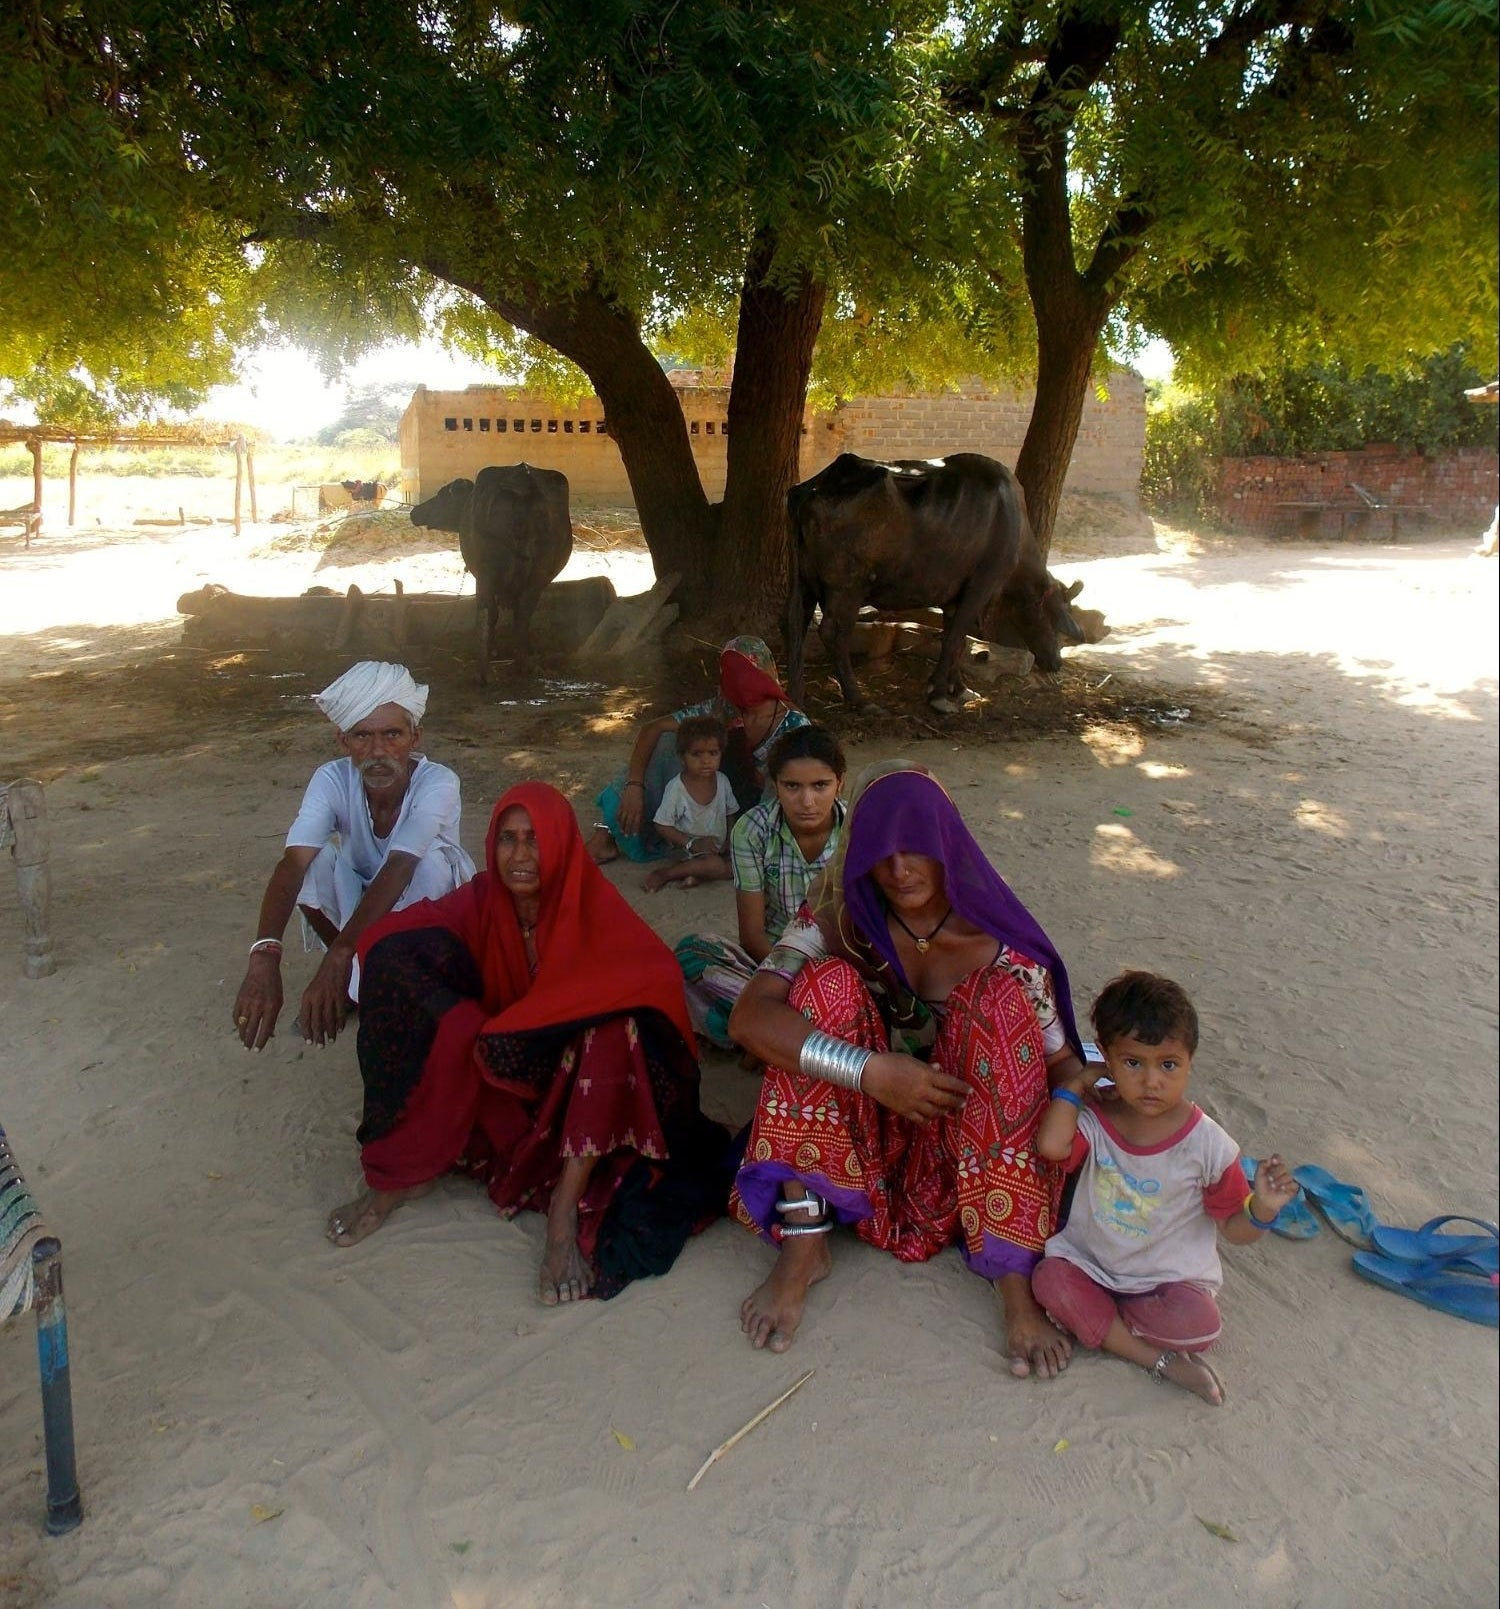 Rurhiben Patel (left) with her family. Her home, once built on fertile soil, now stands on sand.